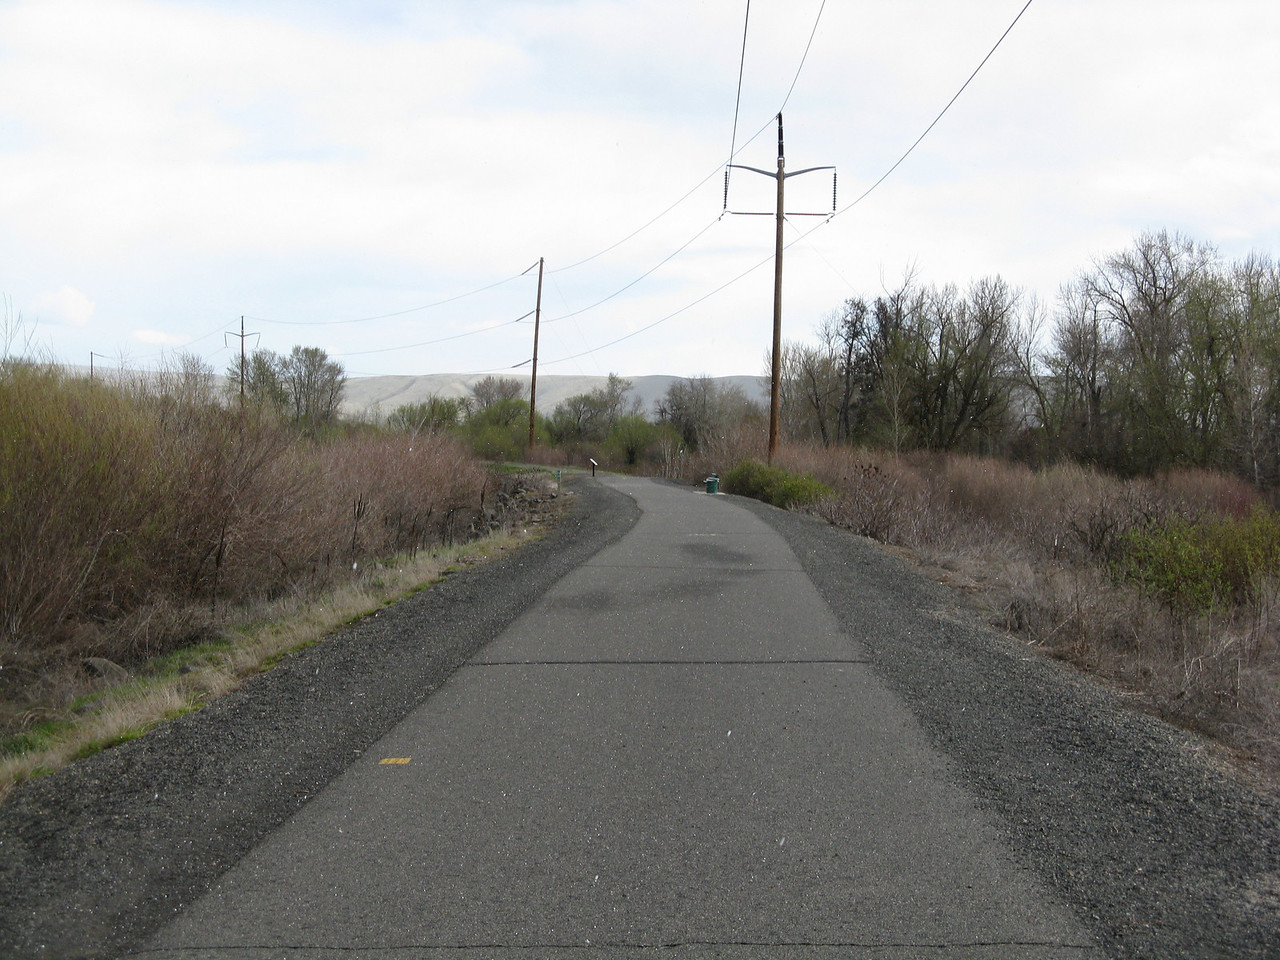 As we started our walk, it began to hail.  The white flecks in the image above are light hail falling on us.  We began the walk in a southbound direction on the Yakima Greenway.  The Yakima River is out of sight on the left.